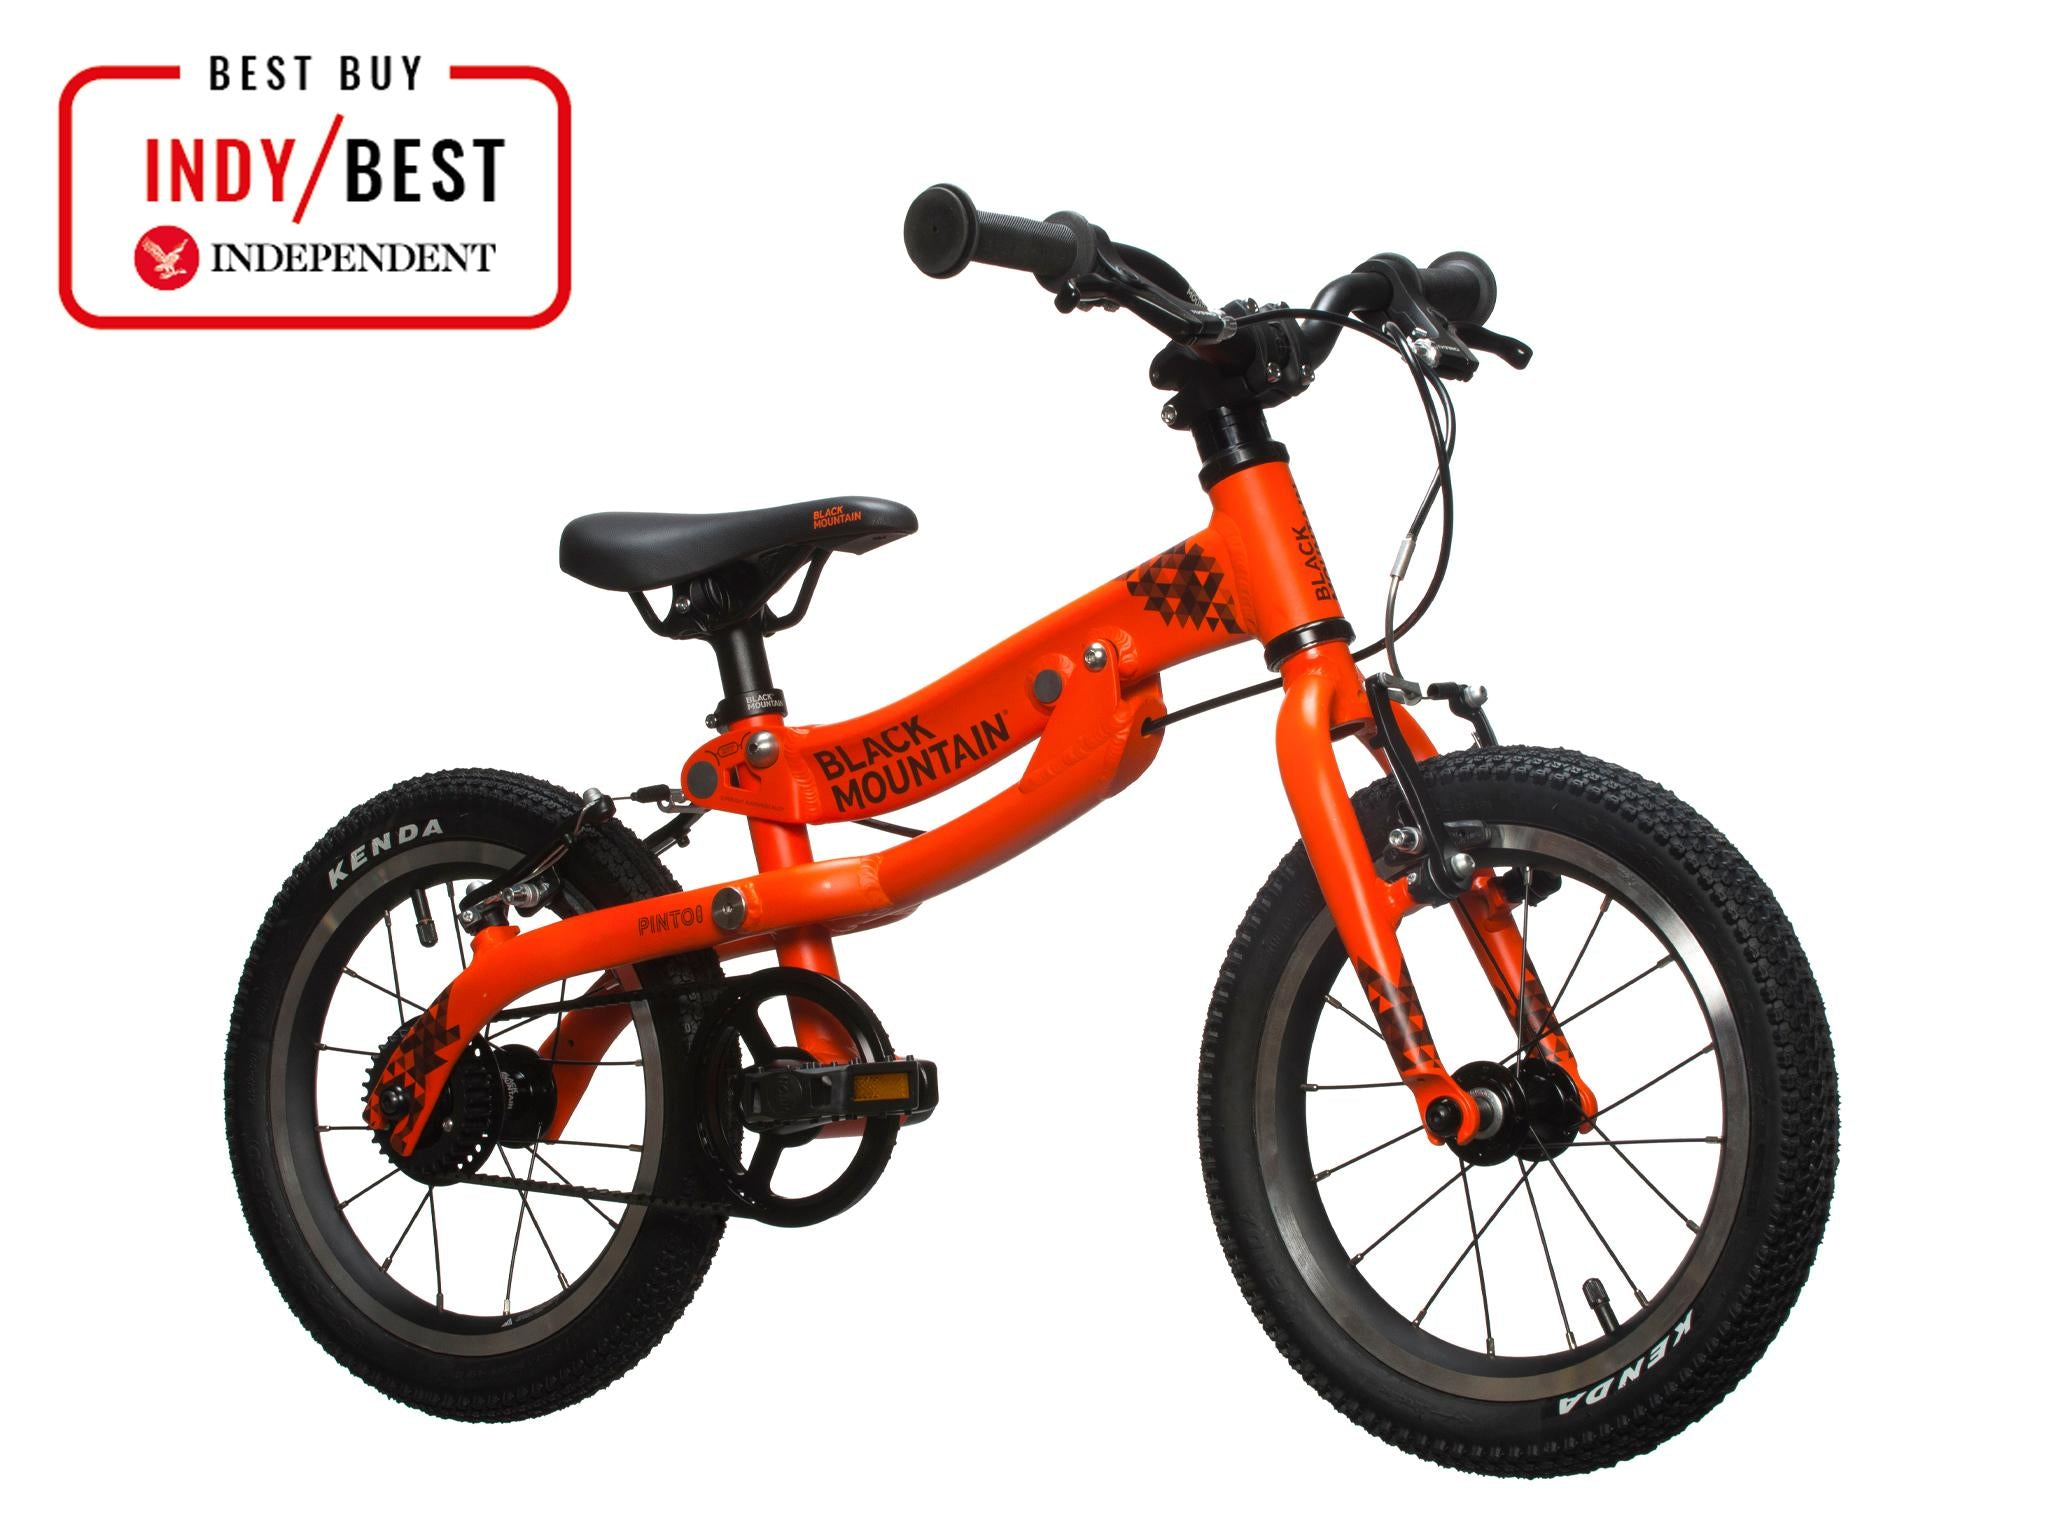 Best balance bike for 2020 awarded by The Independent